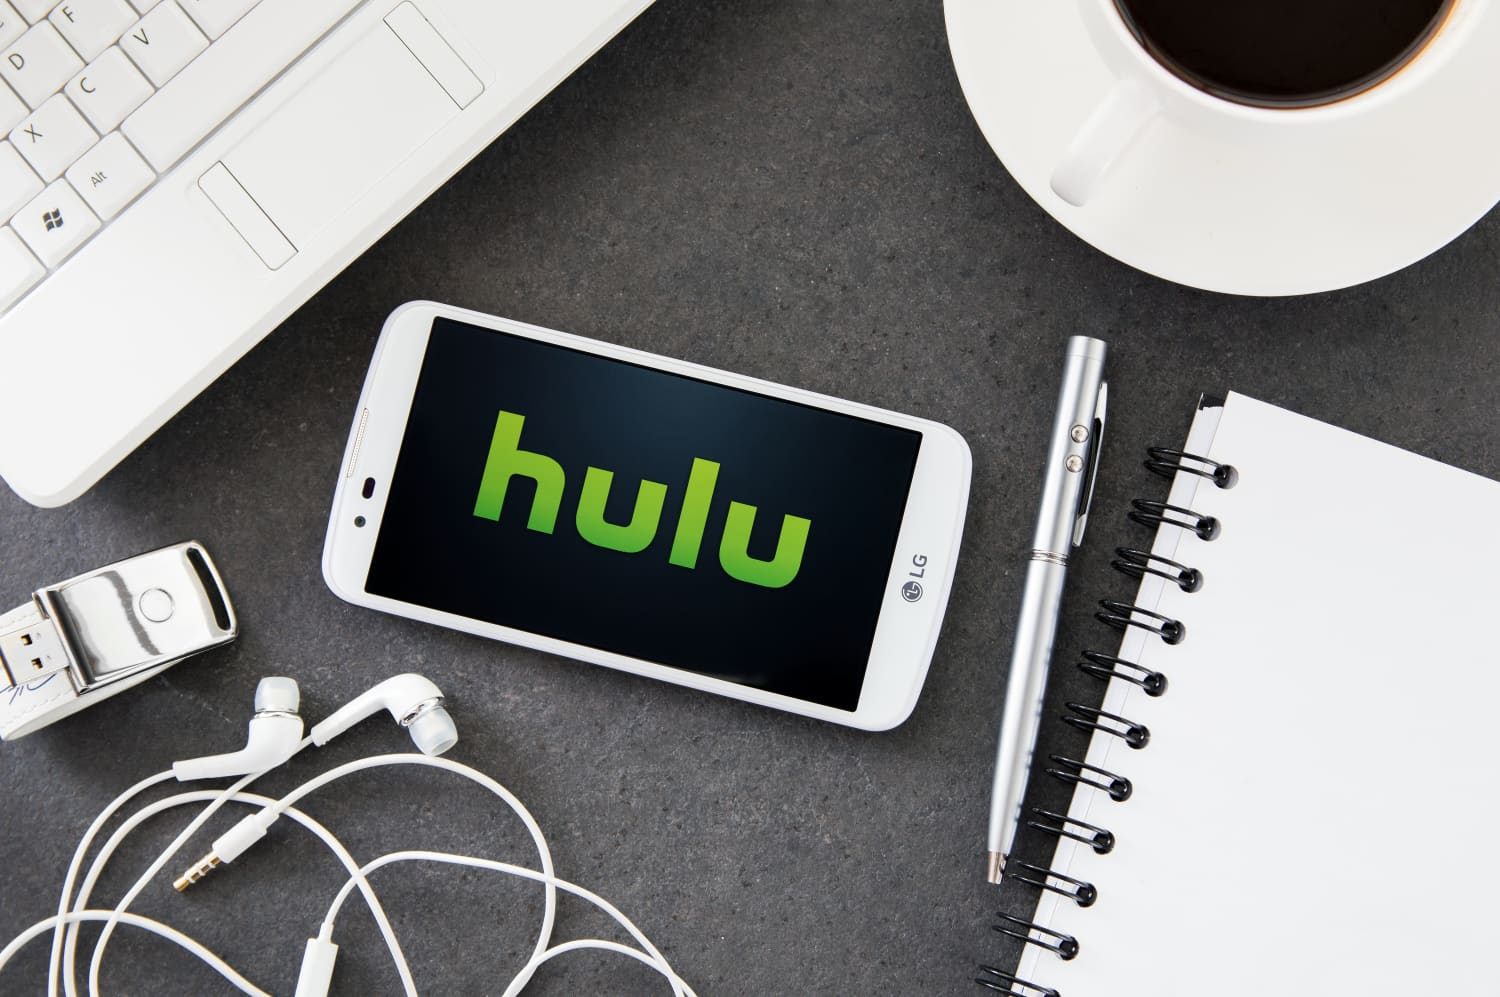 Cancel Hulu: It's Now Free With Your Spotify Subscription